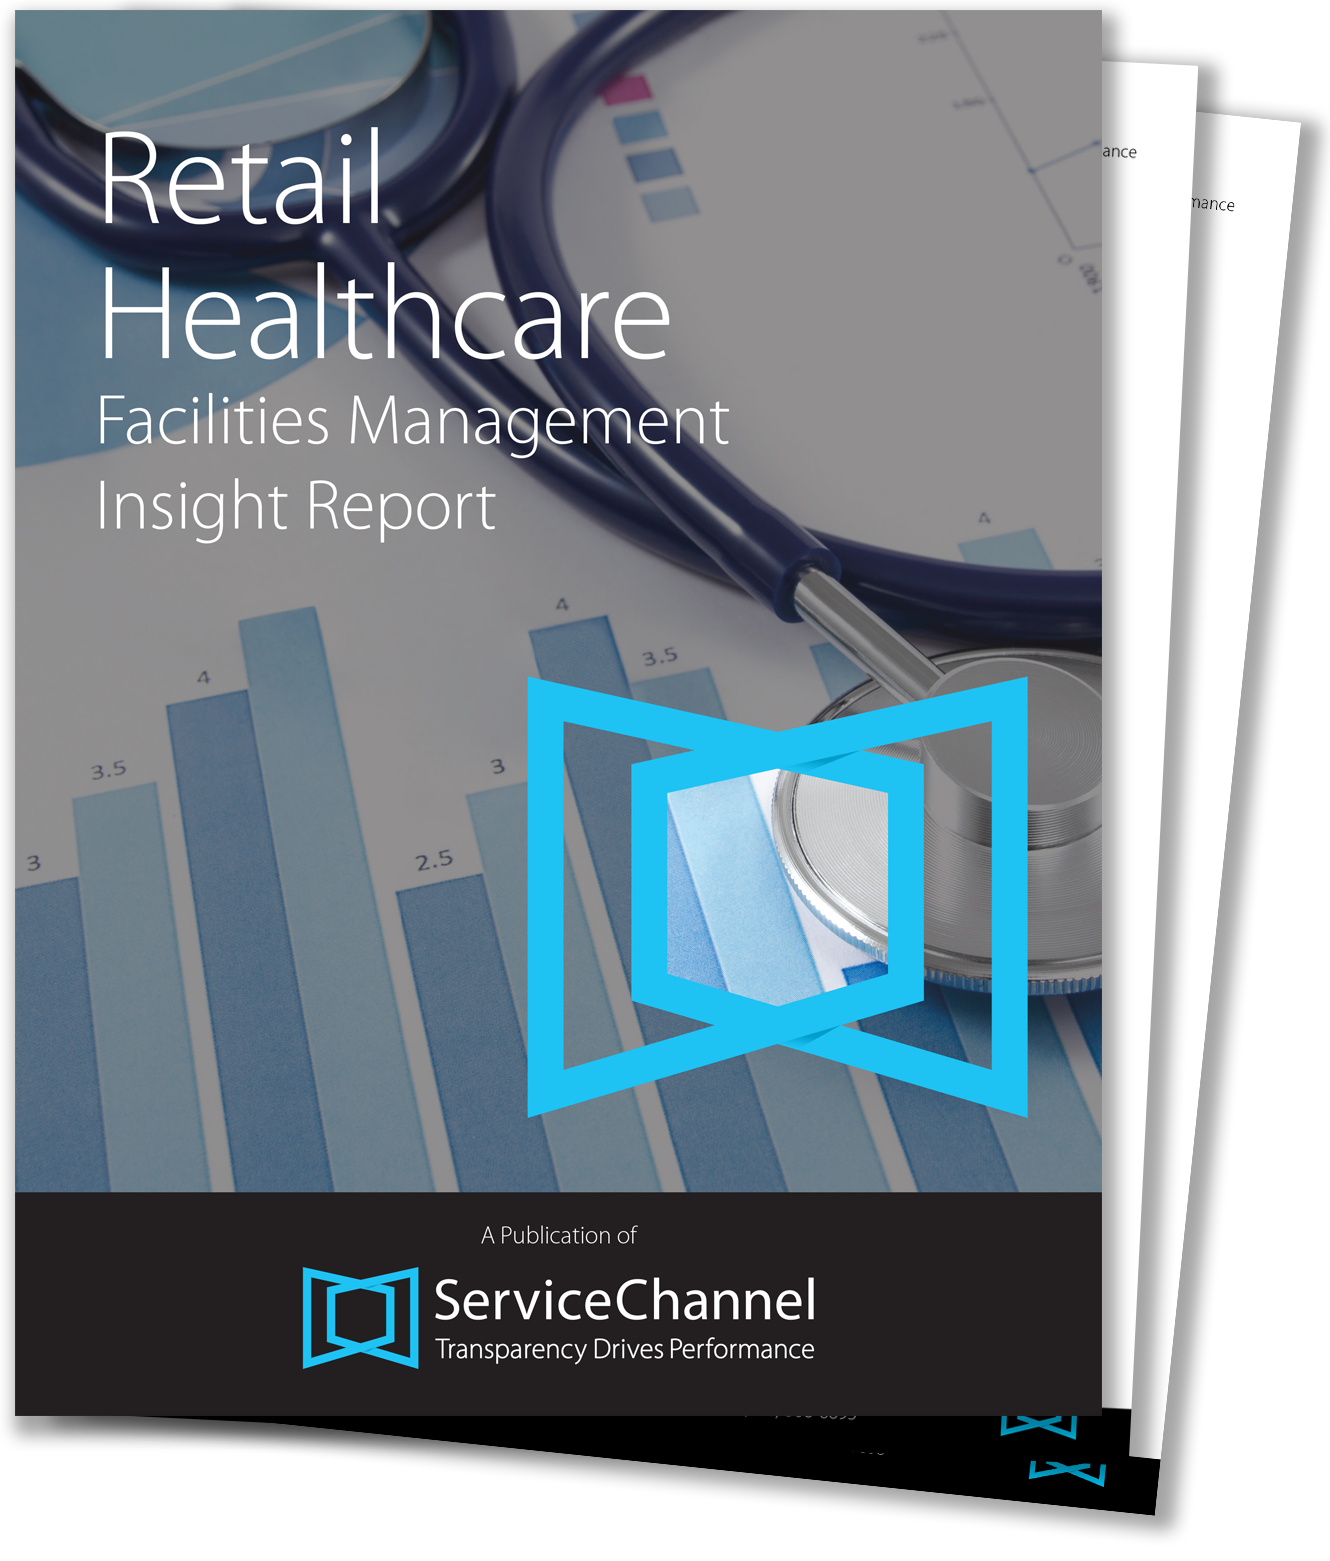 Retail_Healthcare_Facilities_Management_Insight_Report_CTA.png